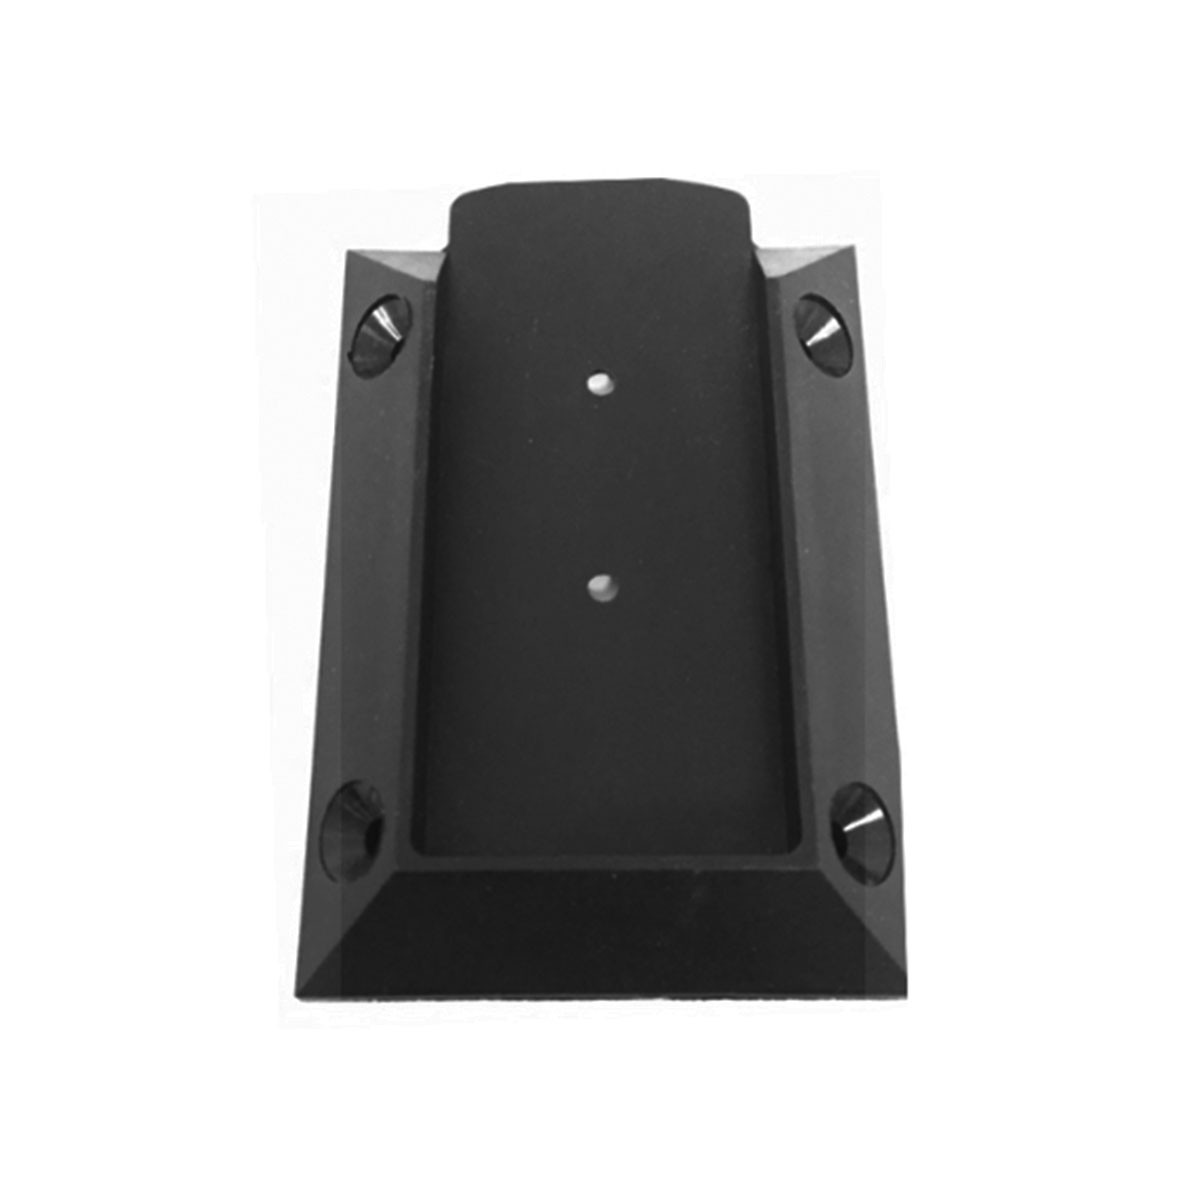 Rail Hanger Brackets by Vista - 2 per pack